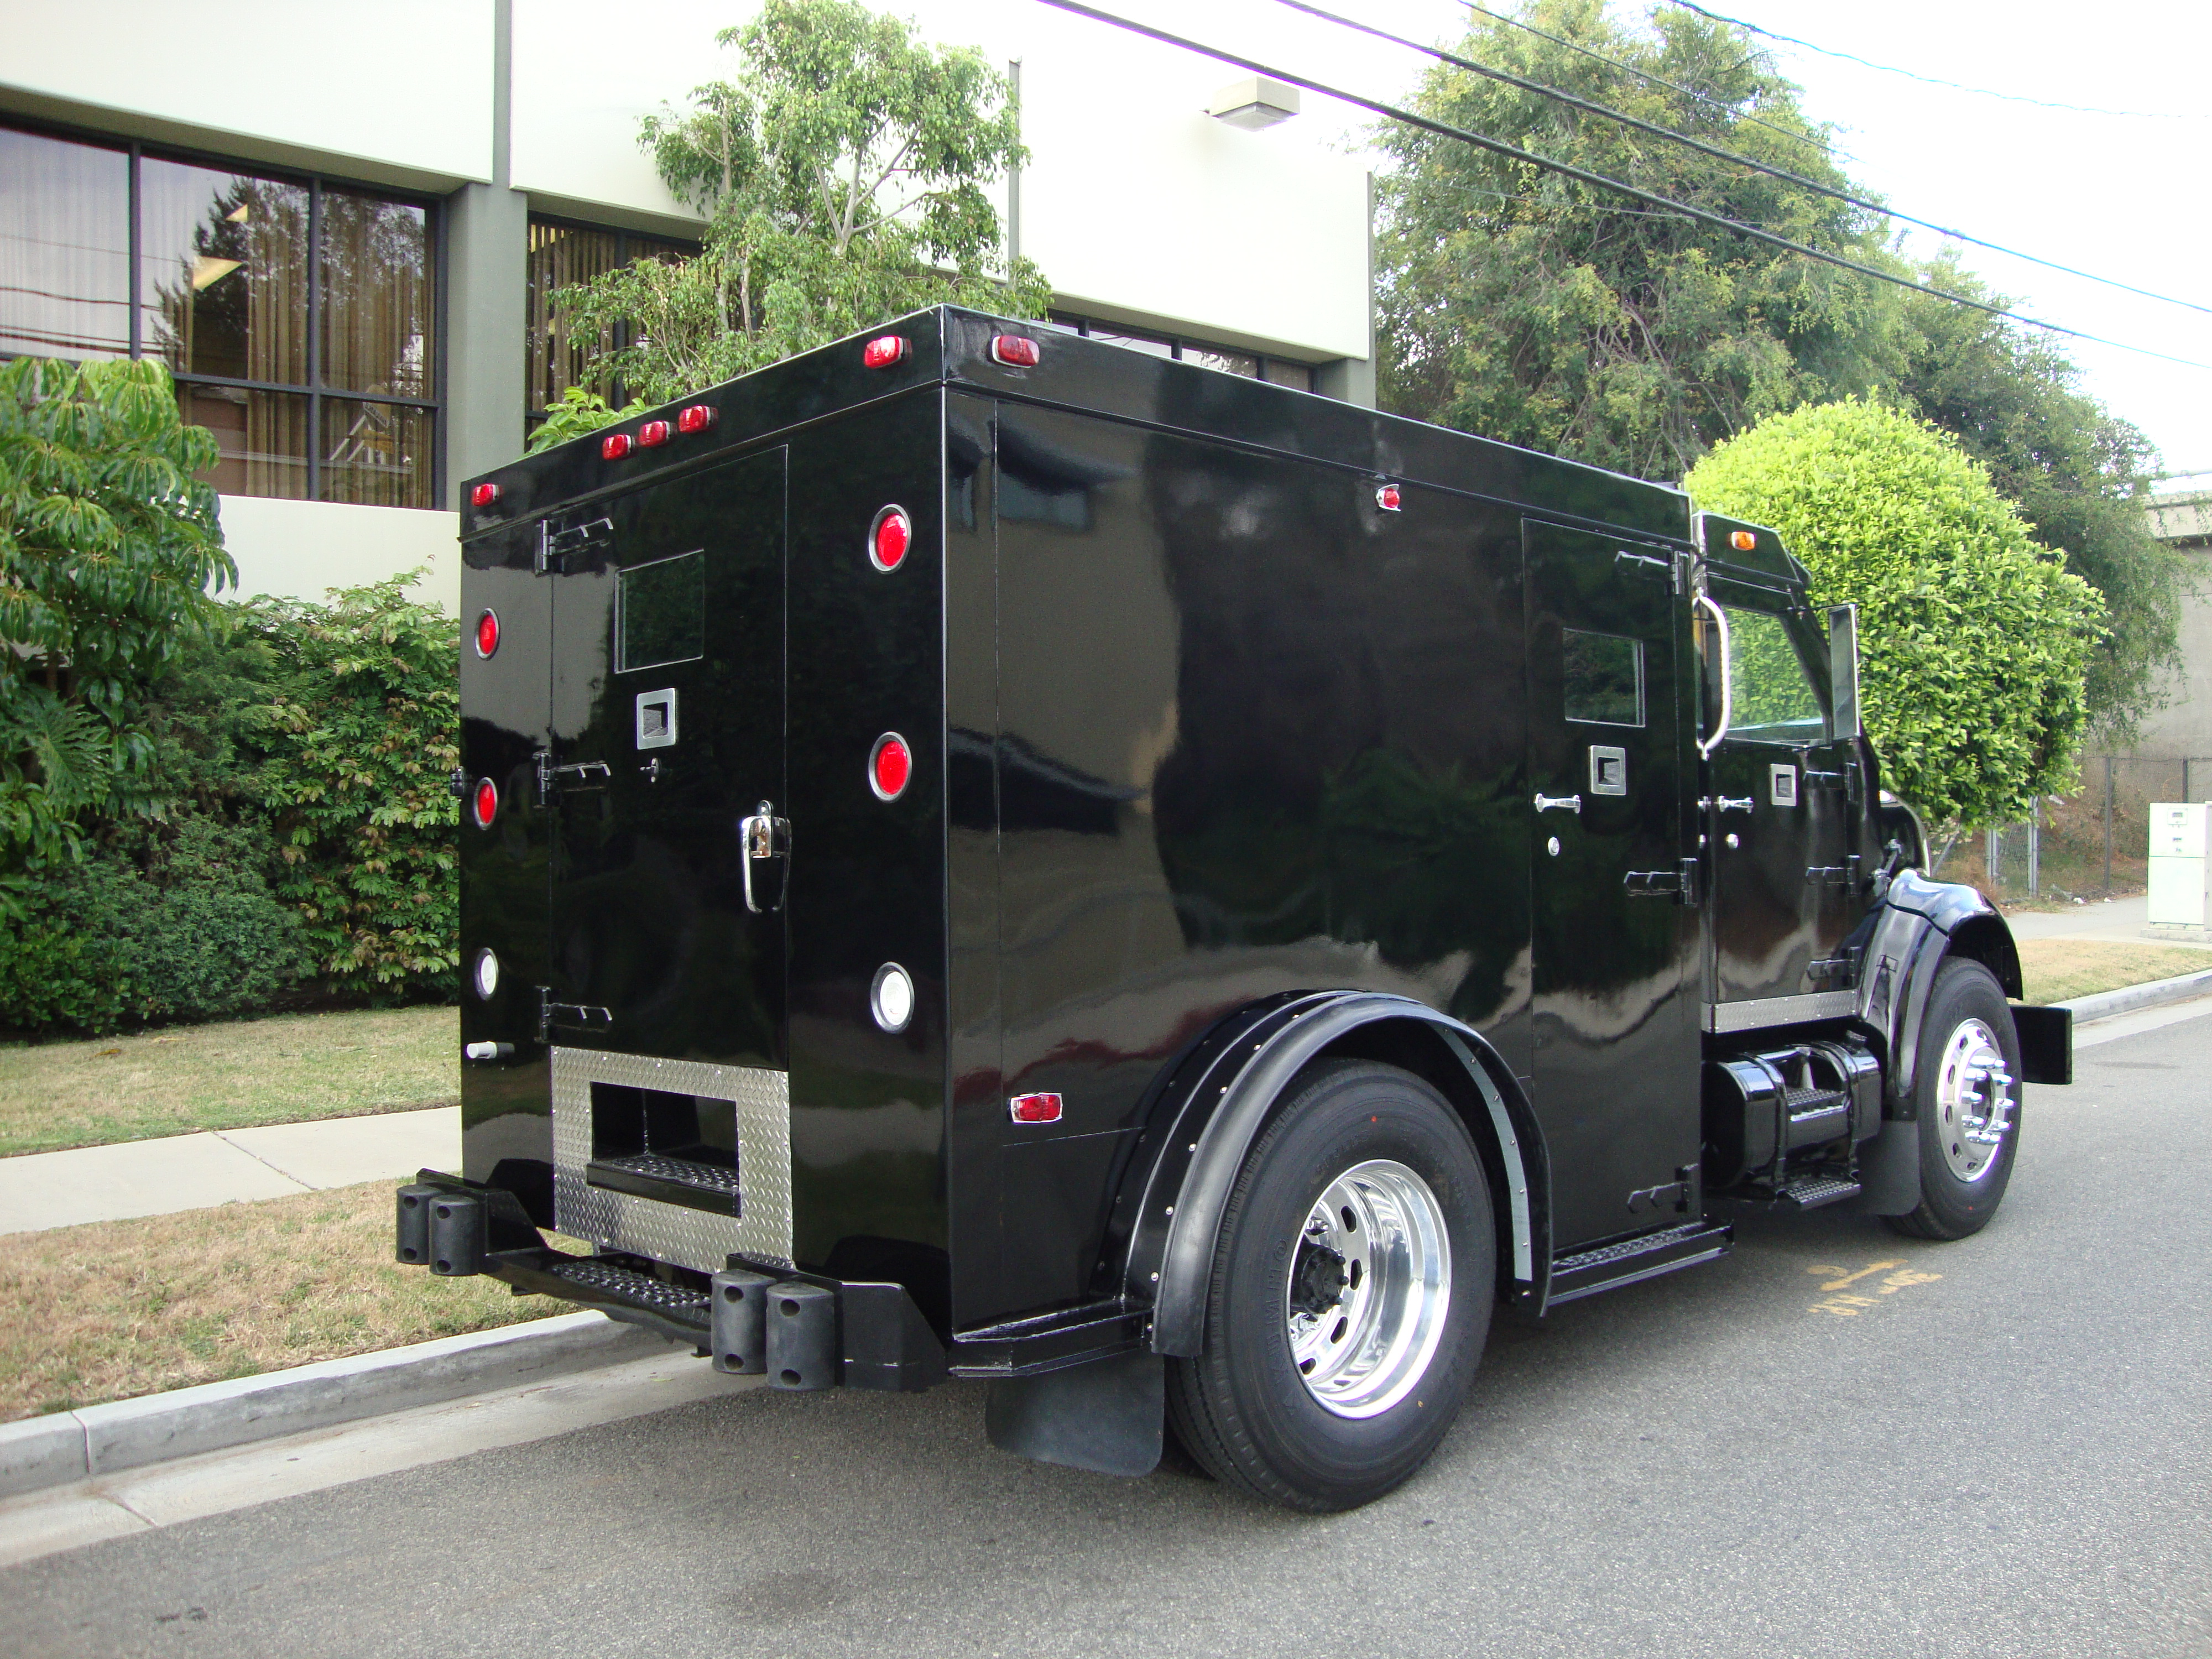 Armored Vehicles For Sale >> Refurbished International 4700 Custom Ordered Armored Truck Back Side | CBS Armored Trucks